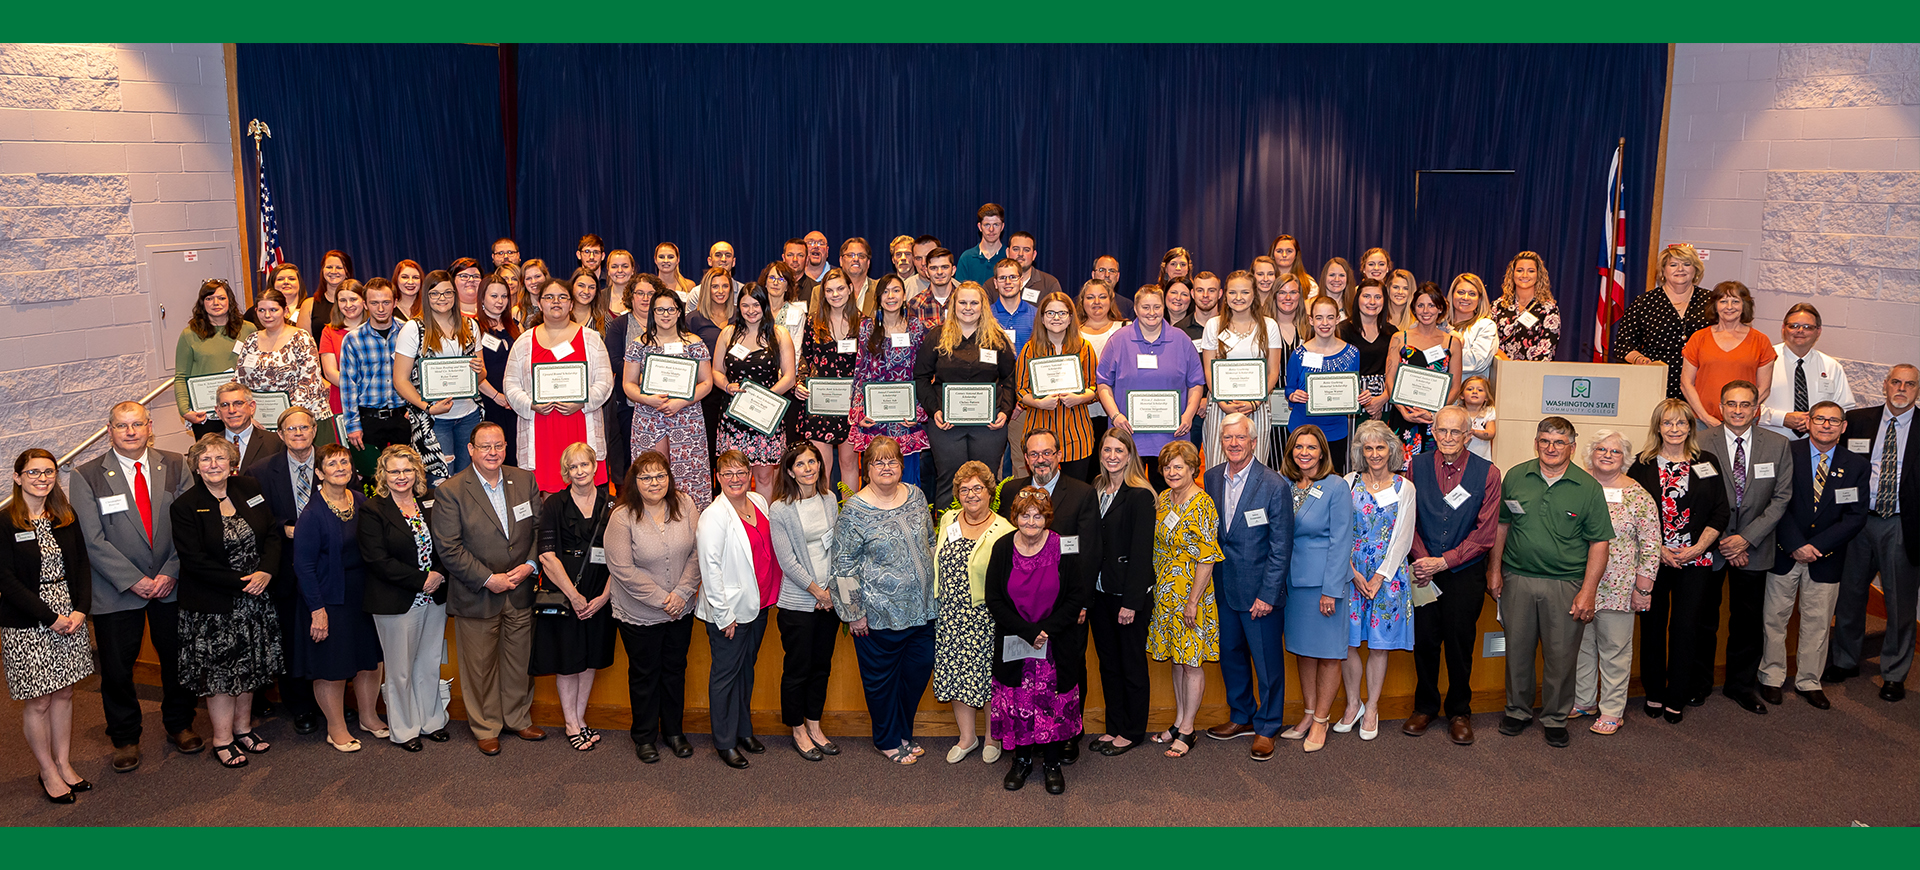 he Washington State Community College (WSCC) Foundation recently recognized both donors and scholarship recipients at the annual Foundation Scholarship Awards Ceremony. The event recognized 91 students who will benefit from Foundation awards in the 2019-20 academic year.